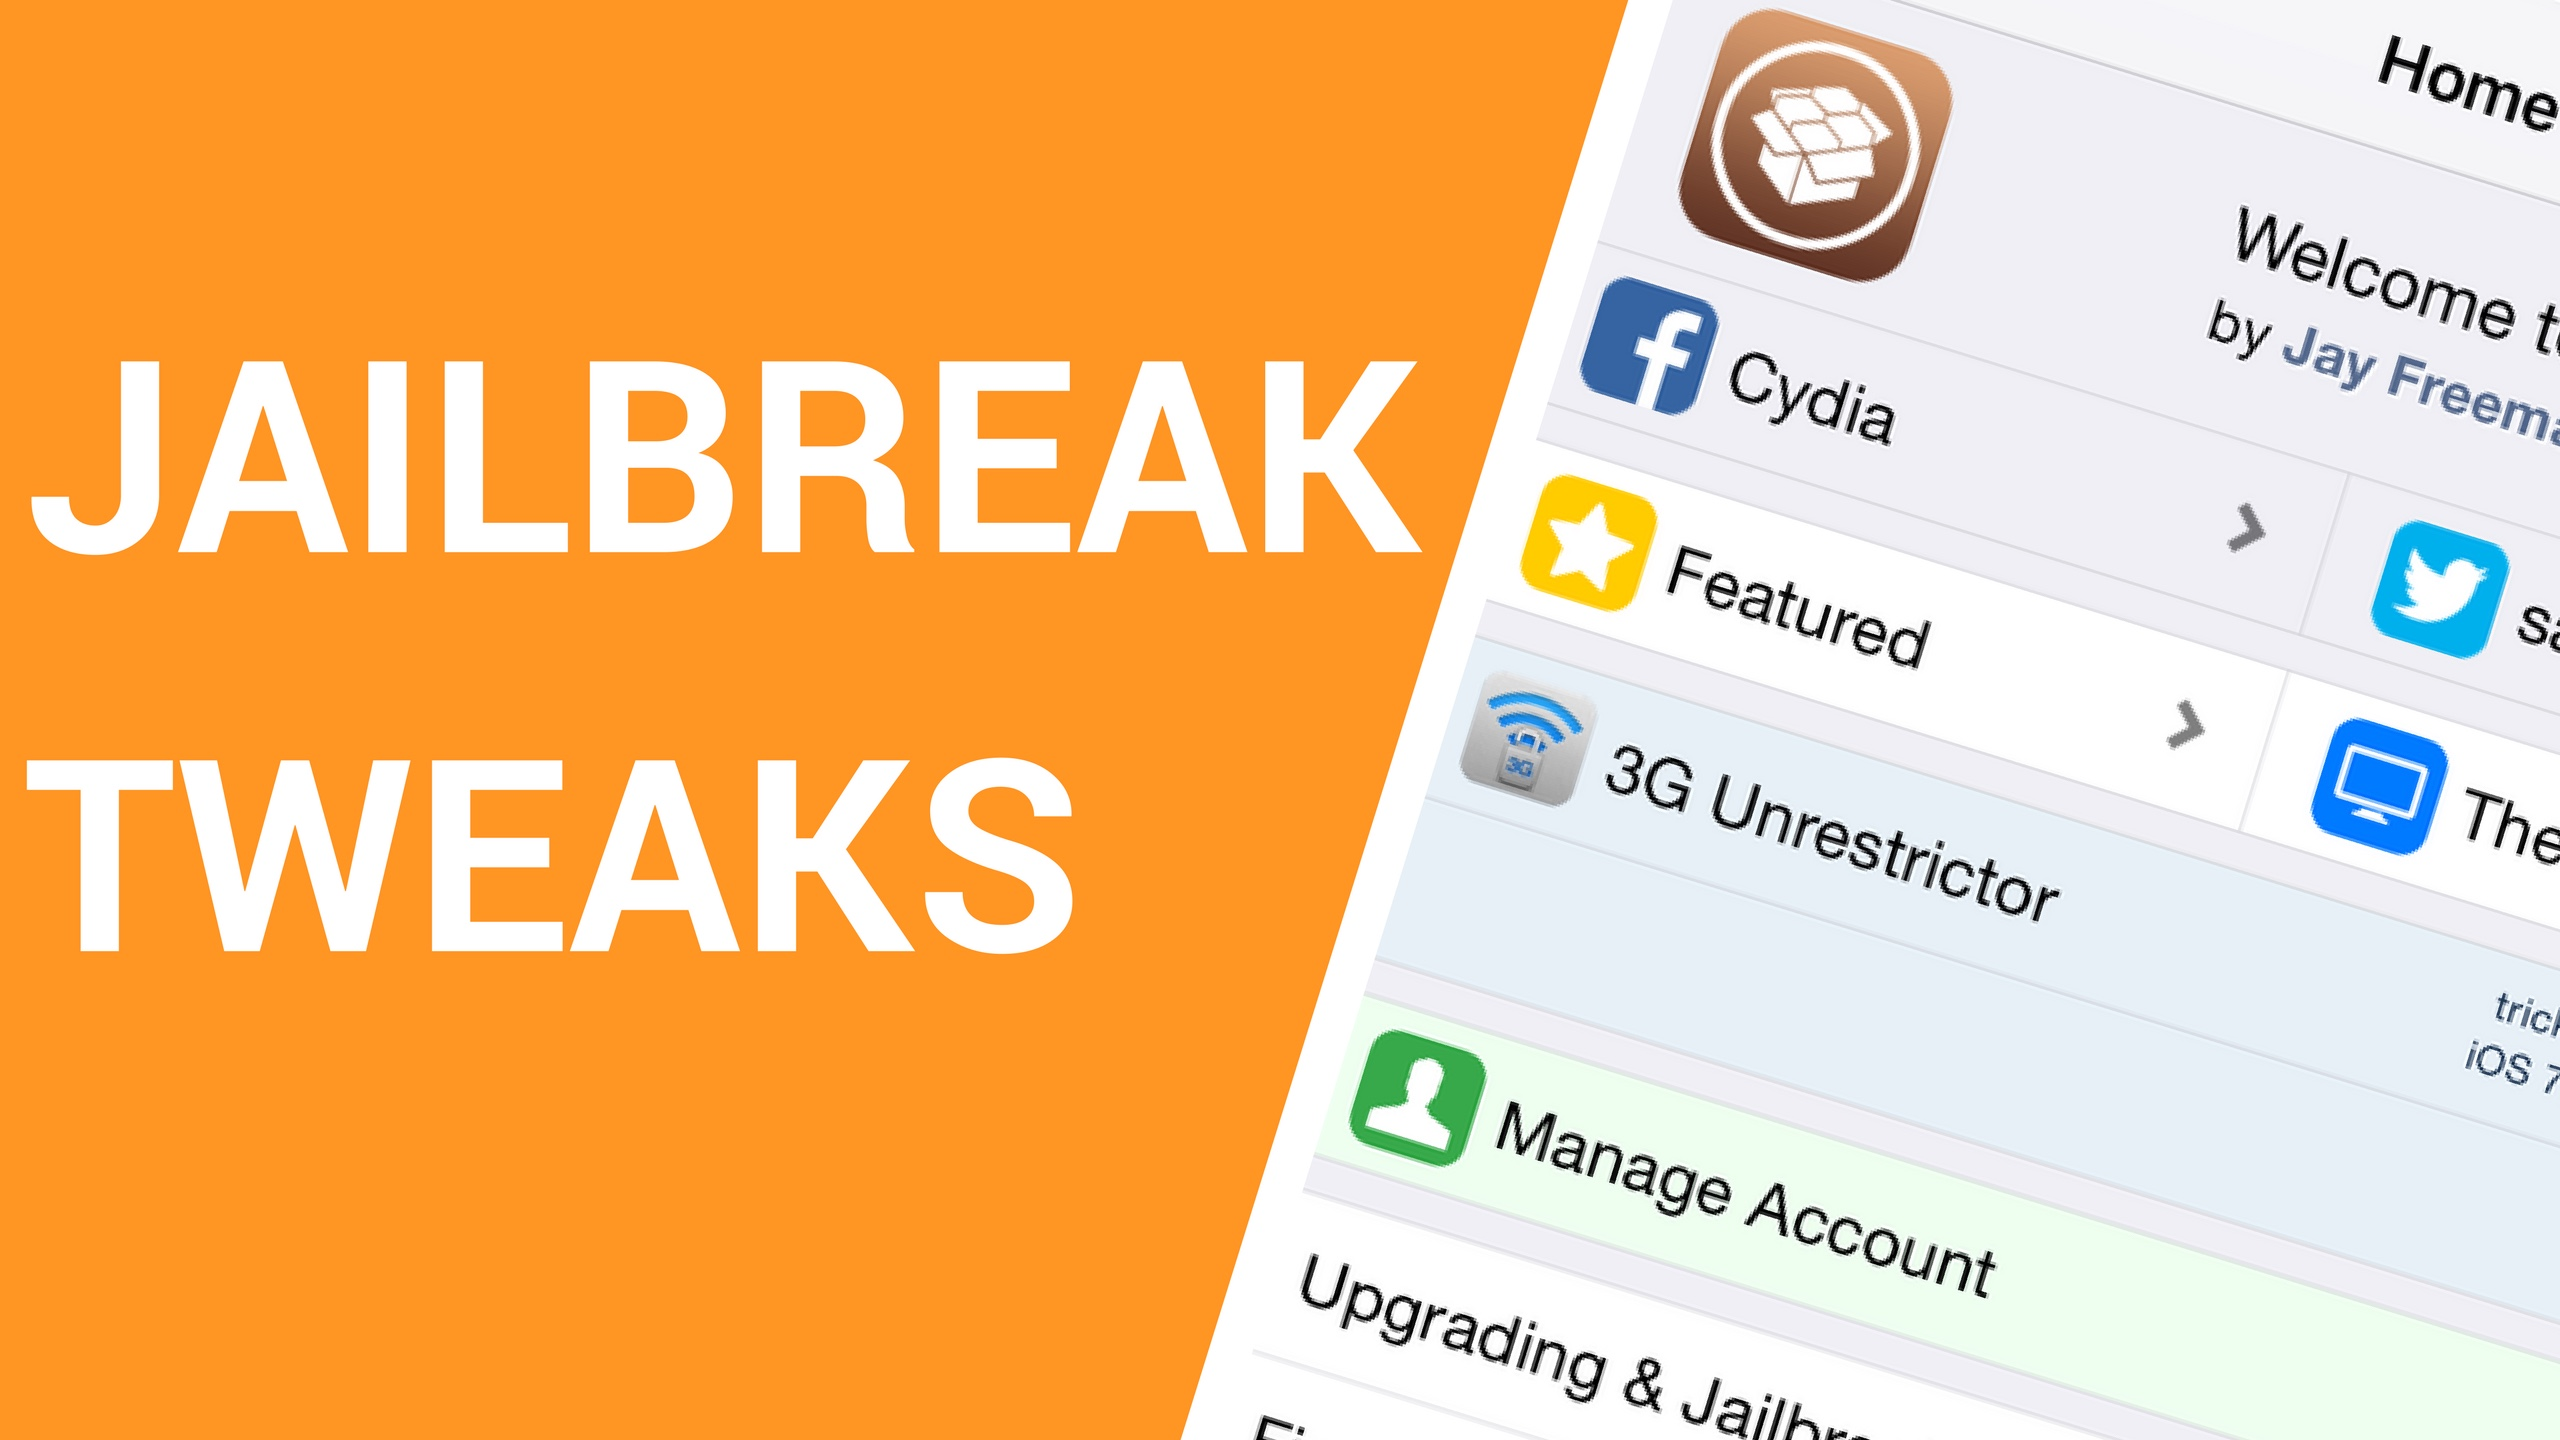 Jailbreak tweaks of the week: fastUpRepo, Fiona, and more